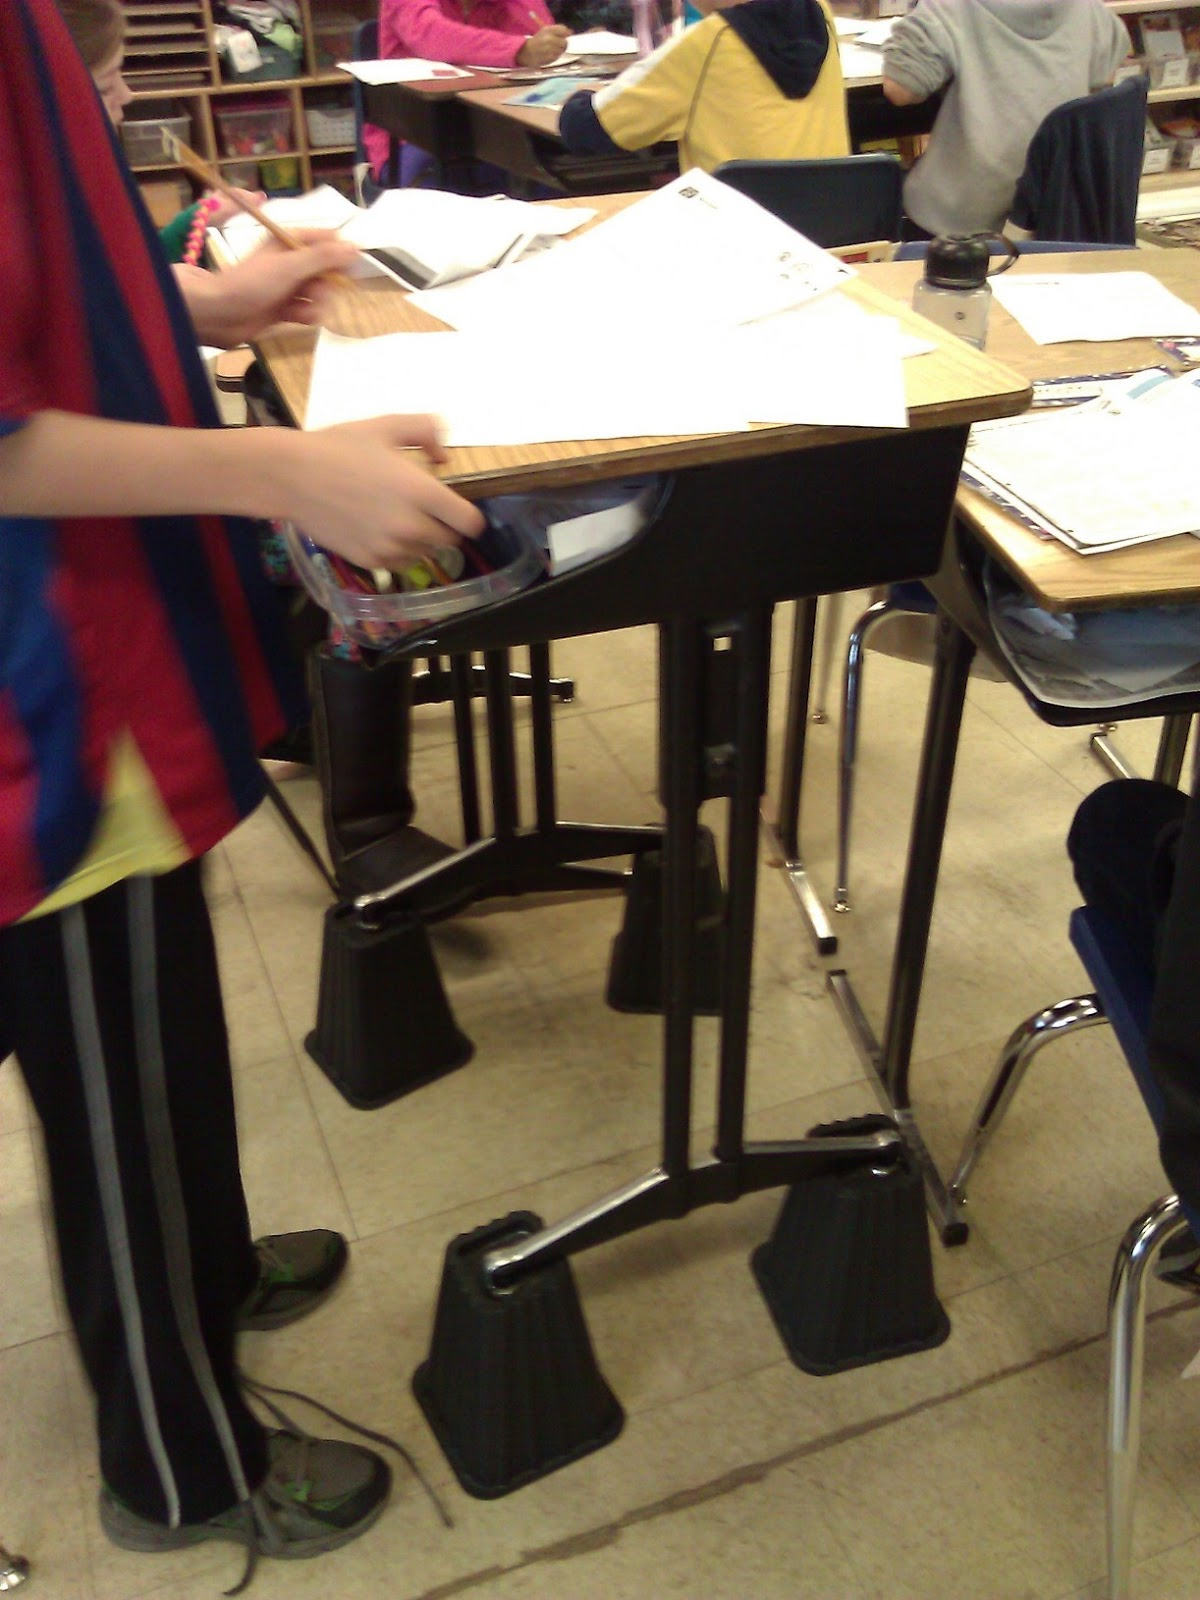 Organizing Chaos in the Classroom: Alternative Seating